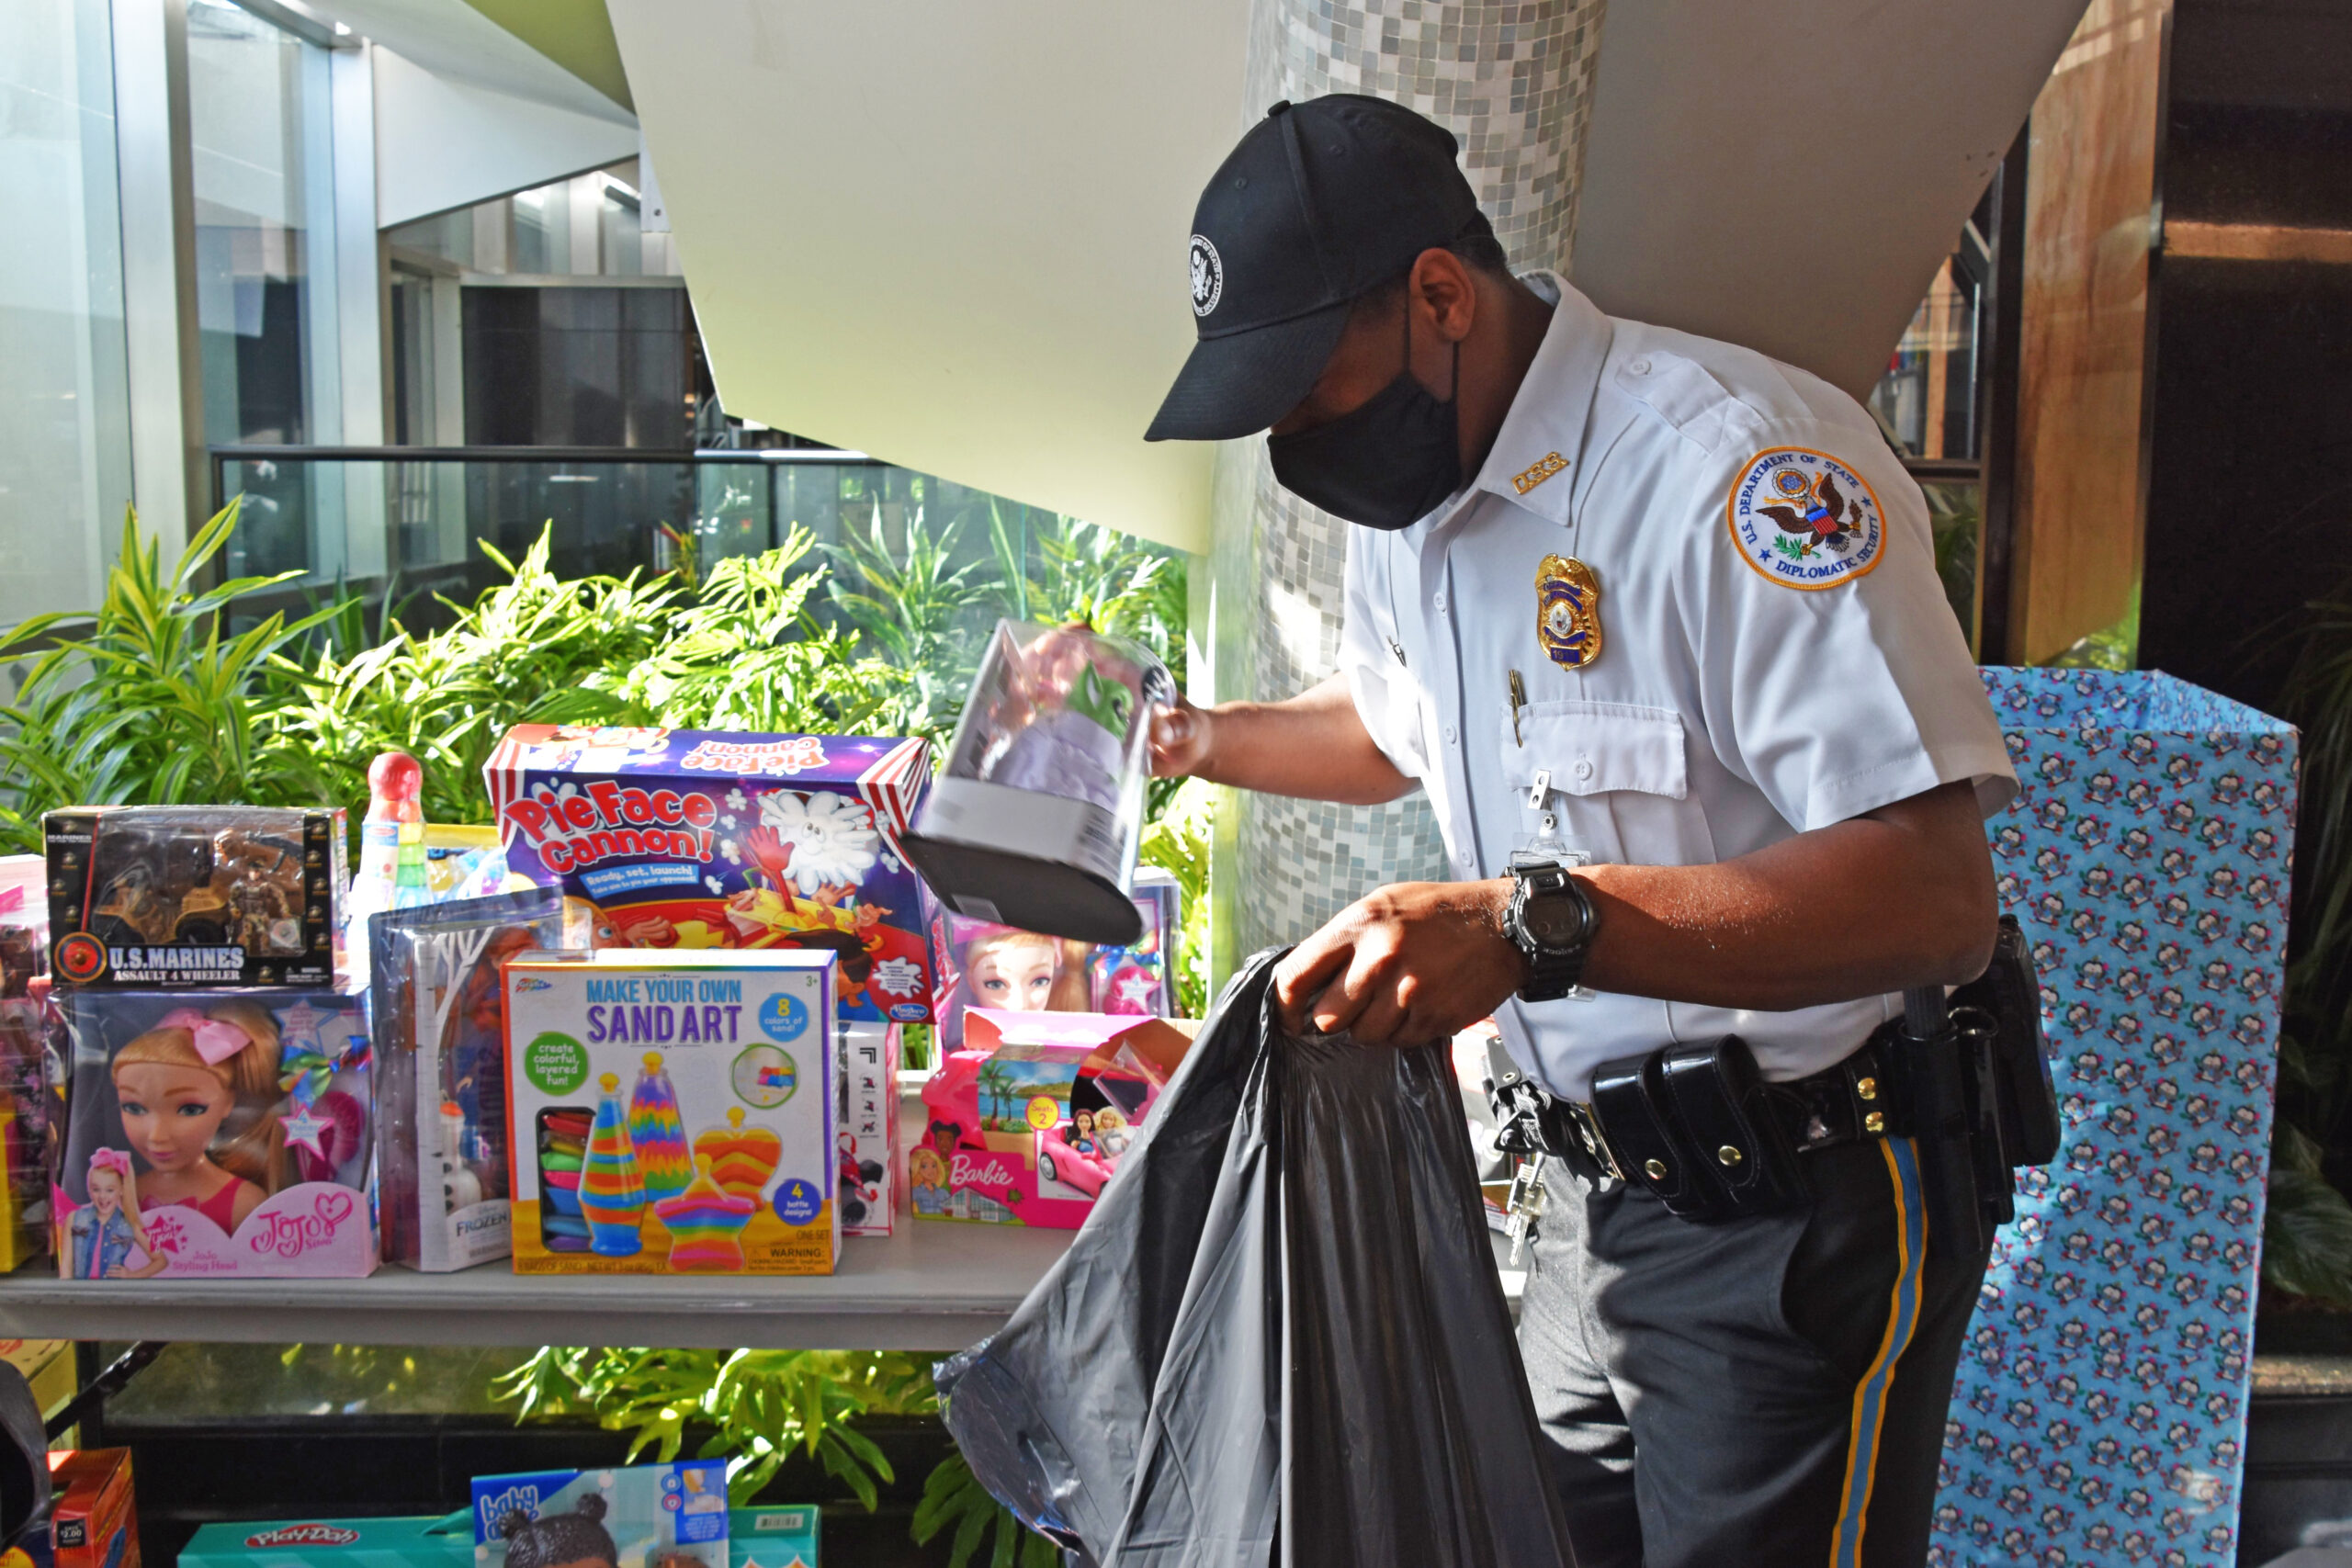 A DSS uniformed guard packs toys collected from Department of State employees and provided to the USMC Toys for Tots program, December 17, 2020. (U.S. Department of State photo)